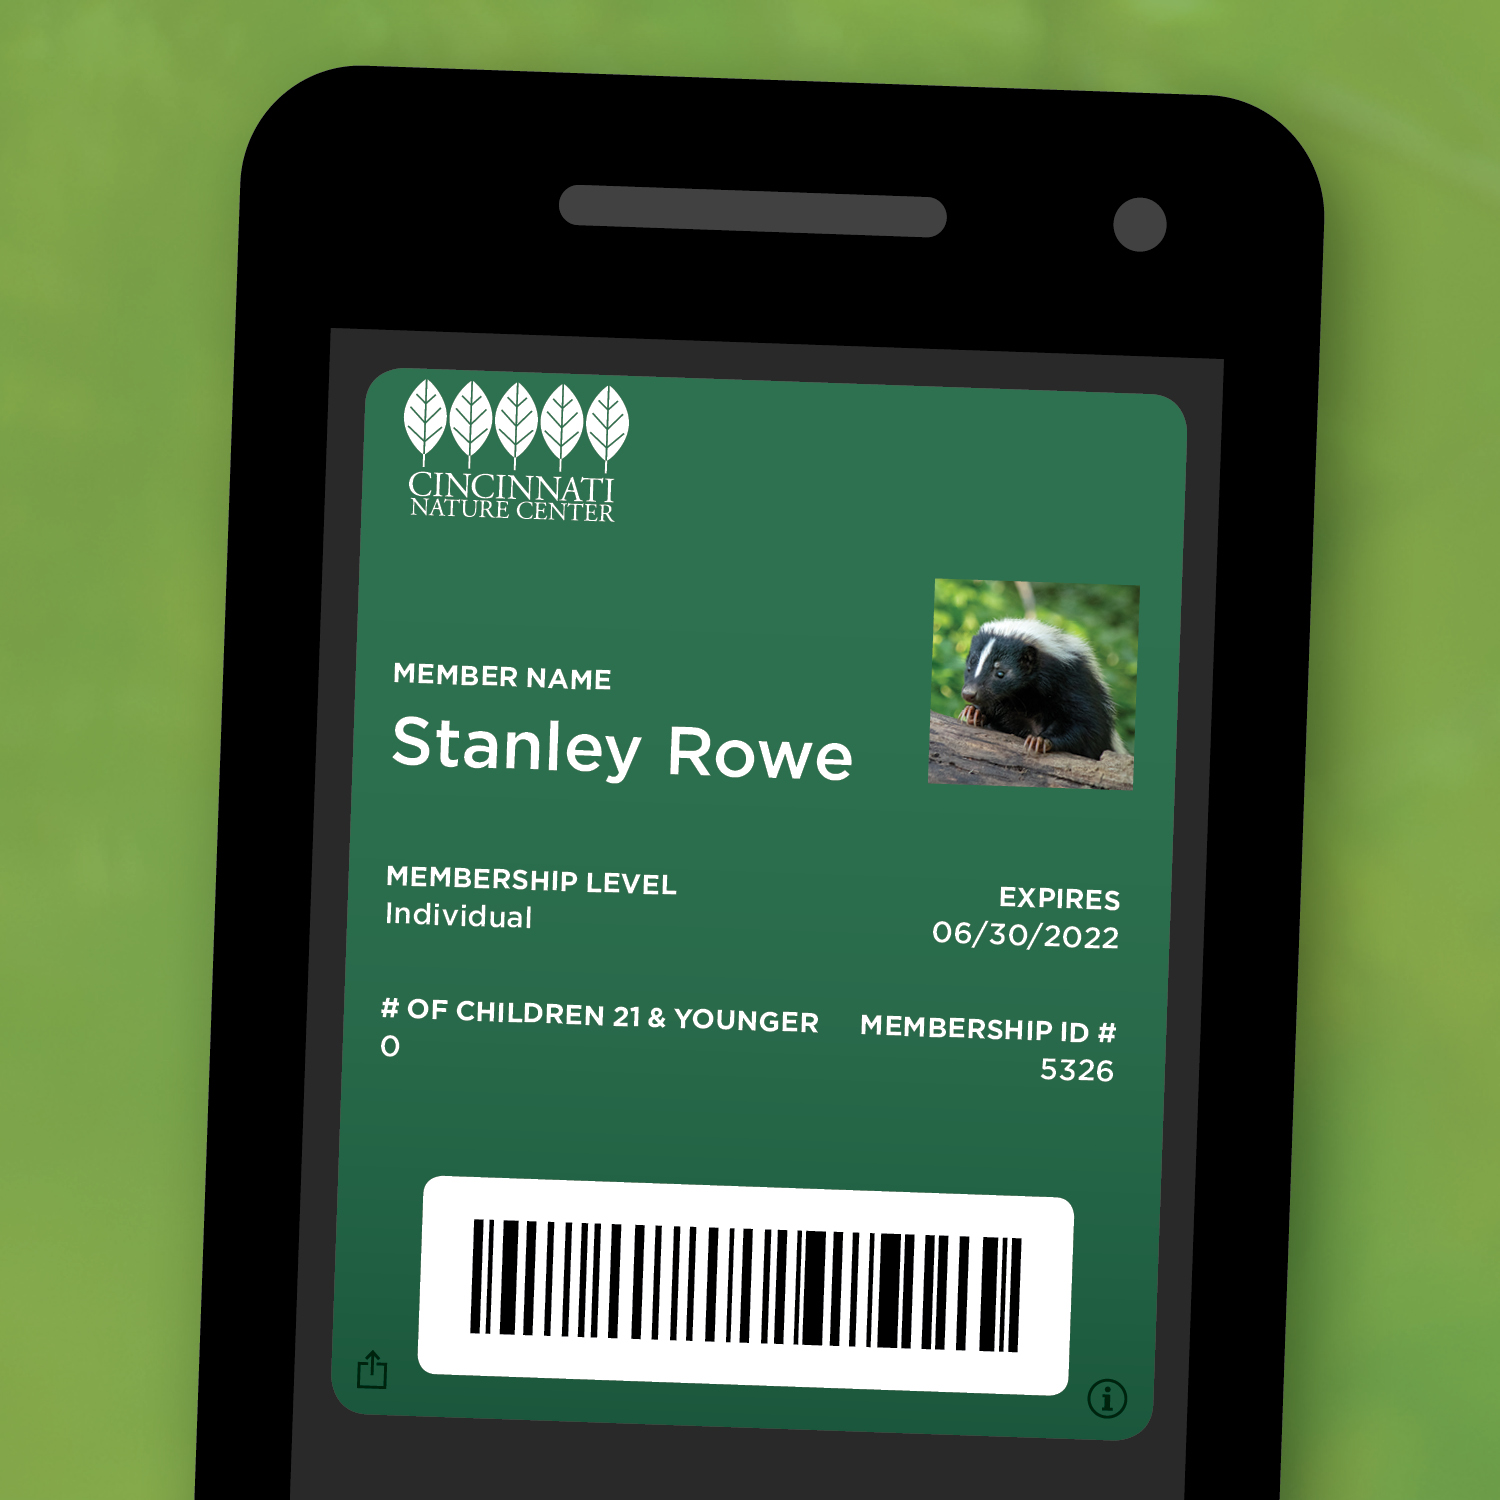 Image of a digital member card on a smart phone